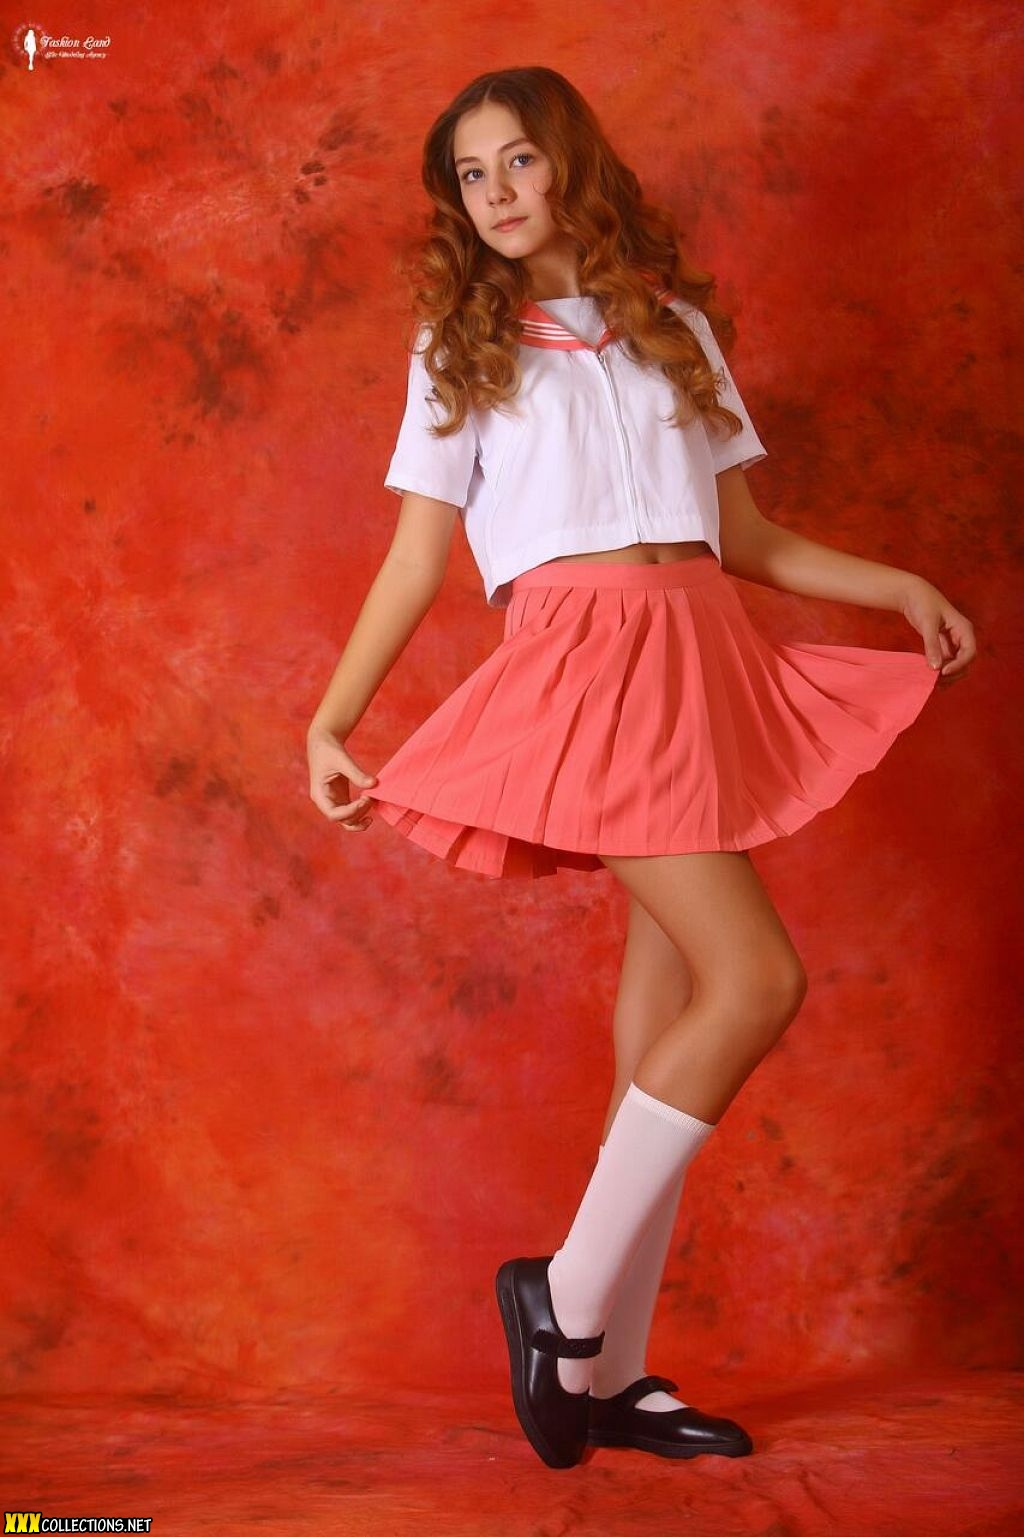 Fashion Land Alissa Picture Set 36 Download Cloudy Girl Pics